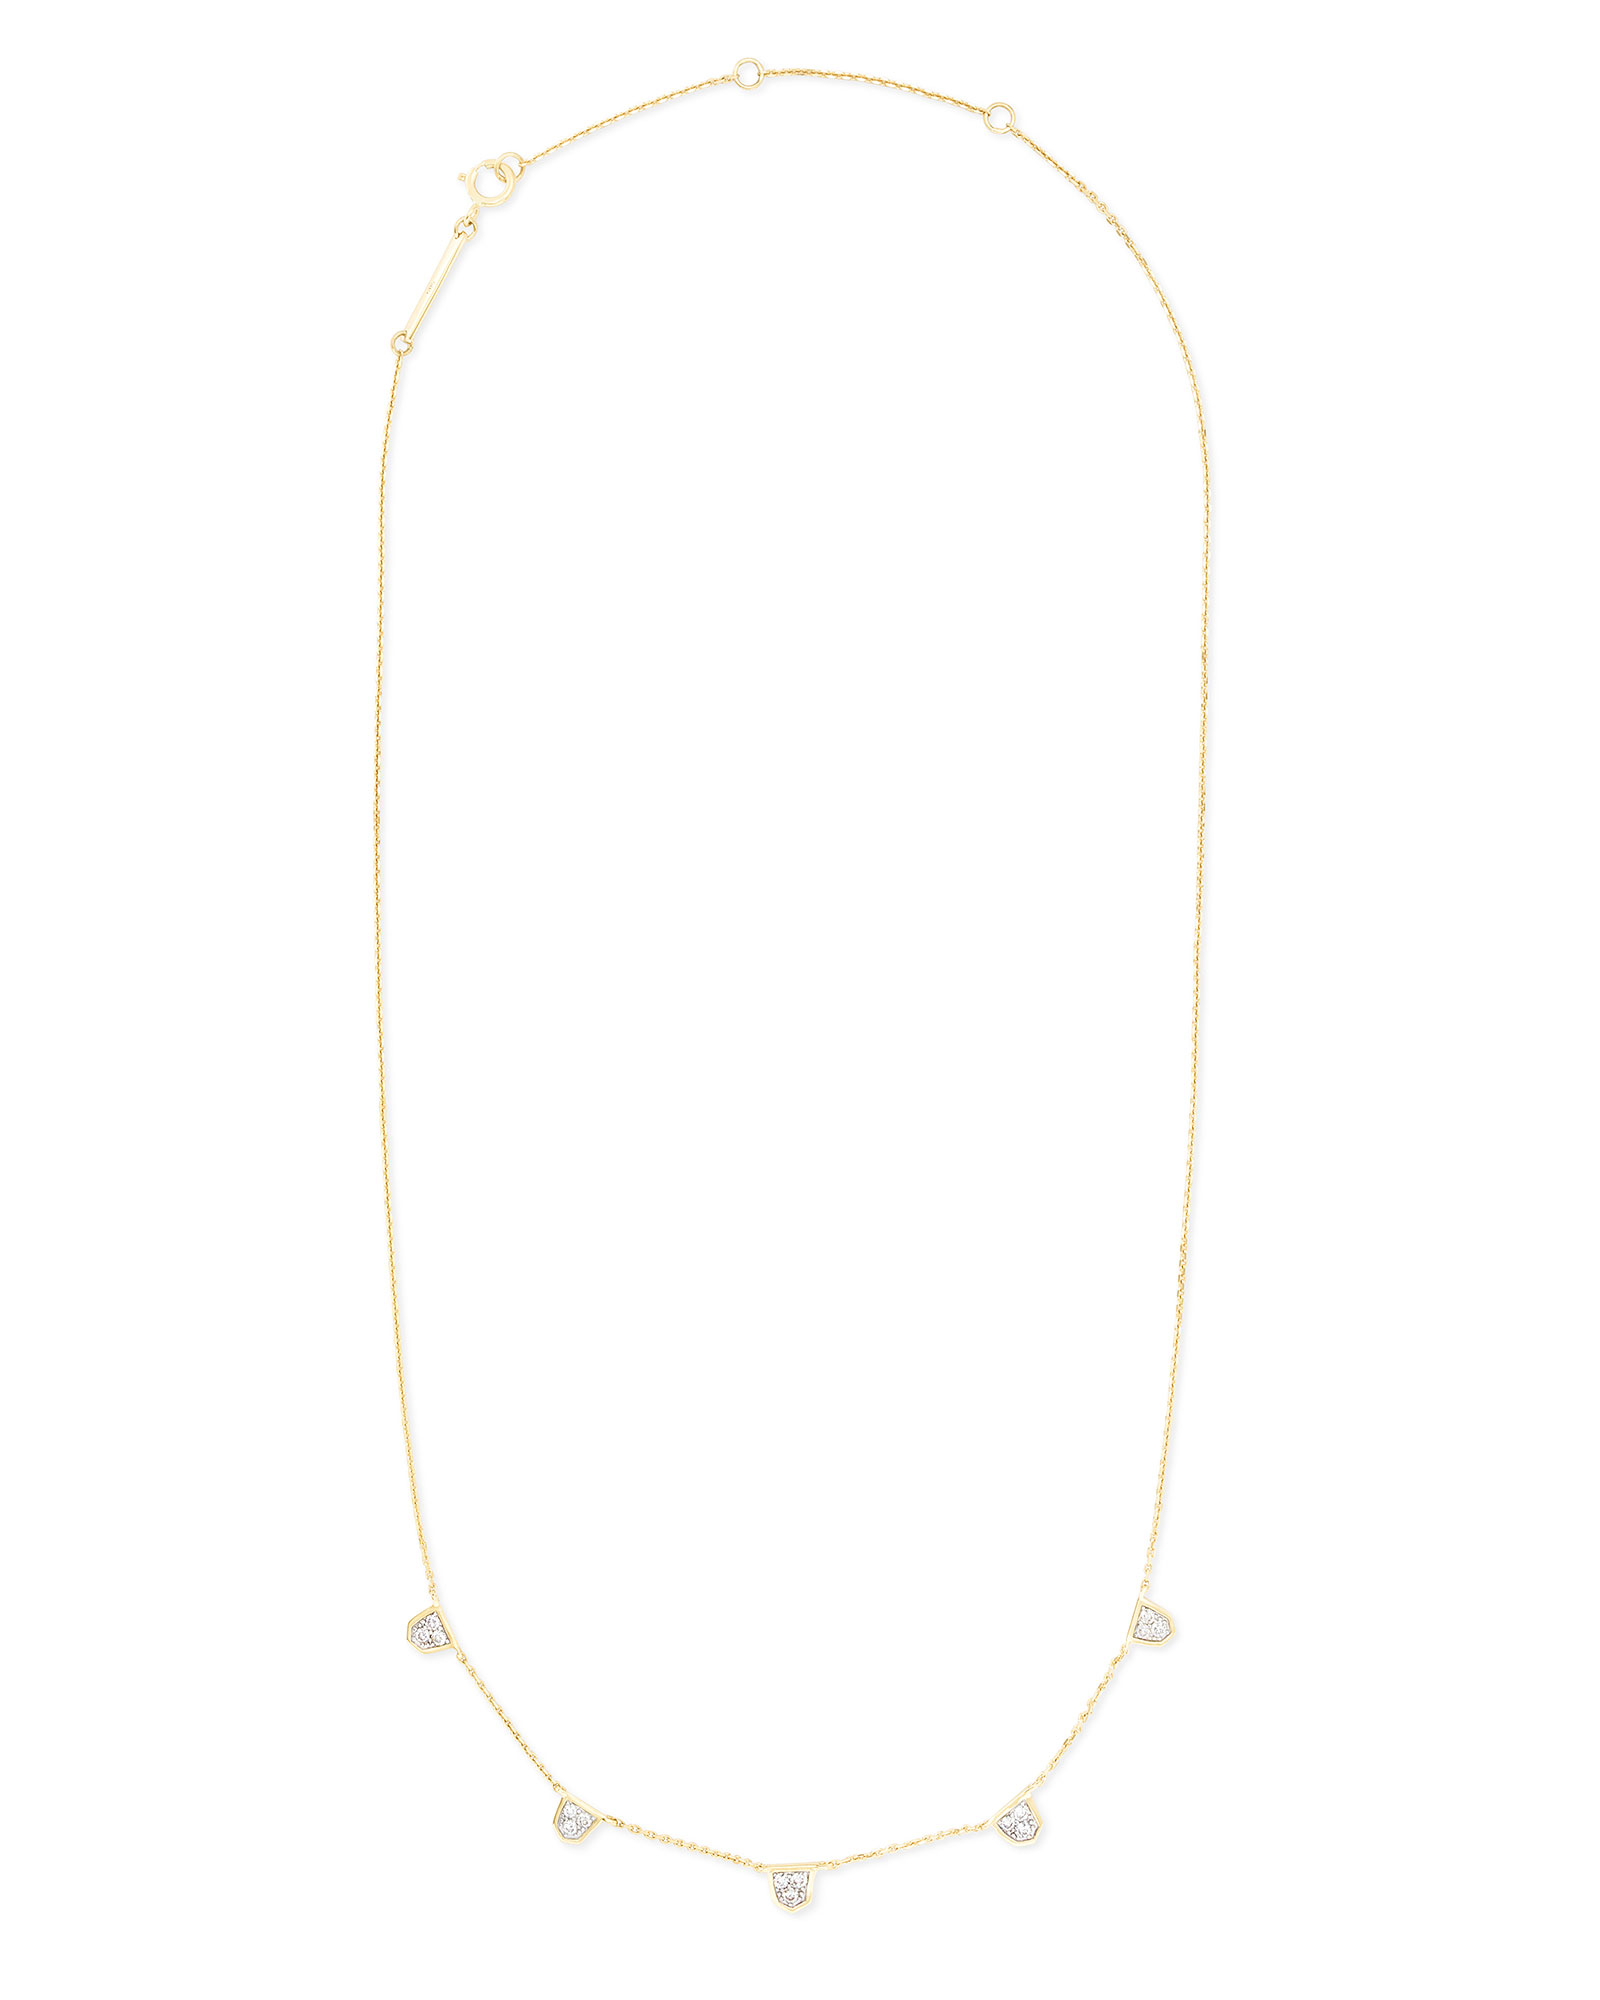 Shannon 14k Yellow Gold Collar Necklace in White Diamond